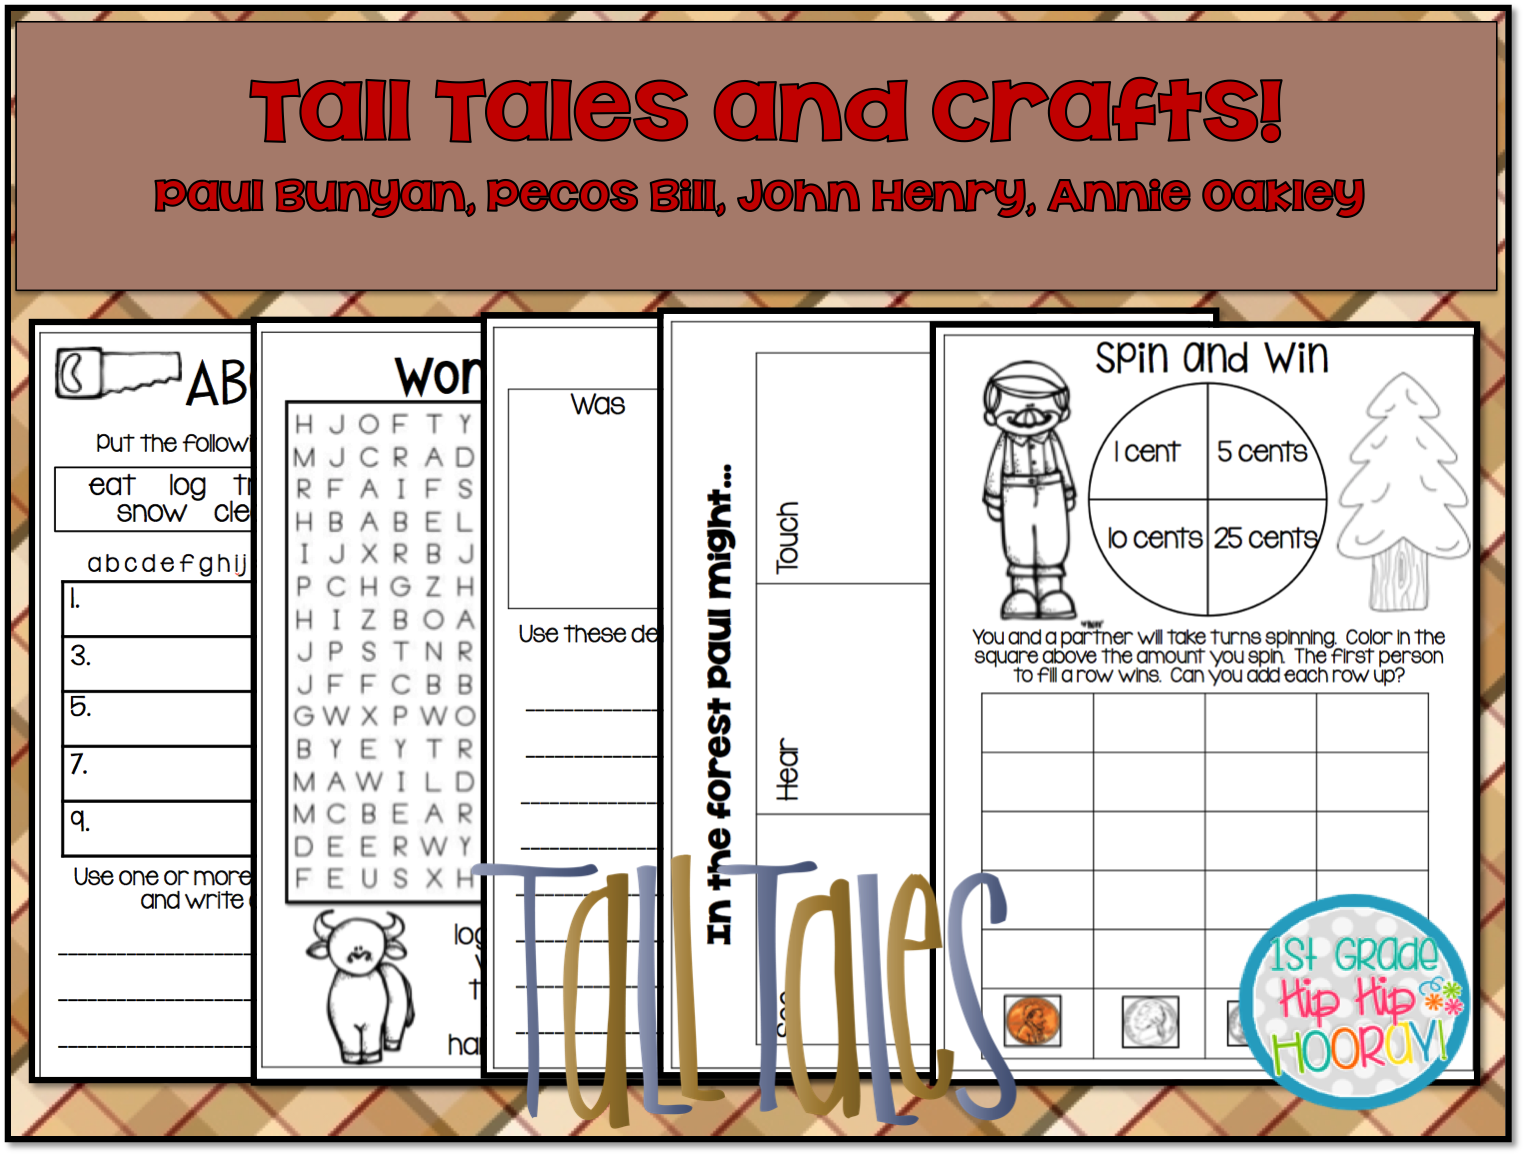 1st Grade Hip Hip Hooray Tall Tales For The Primary Child Afts And Activities